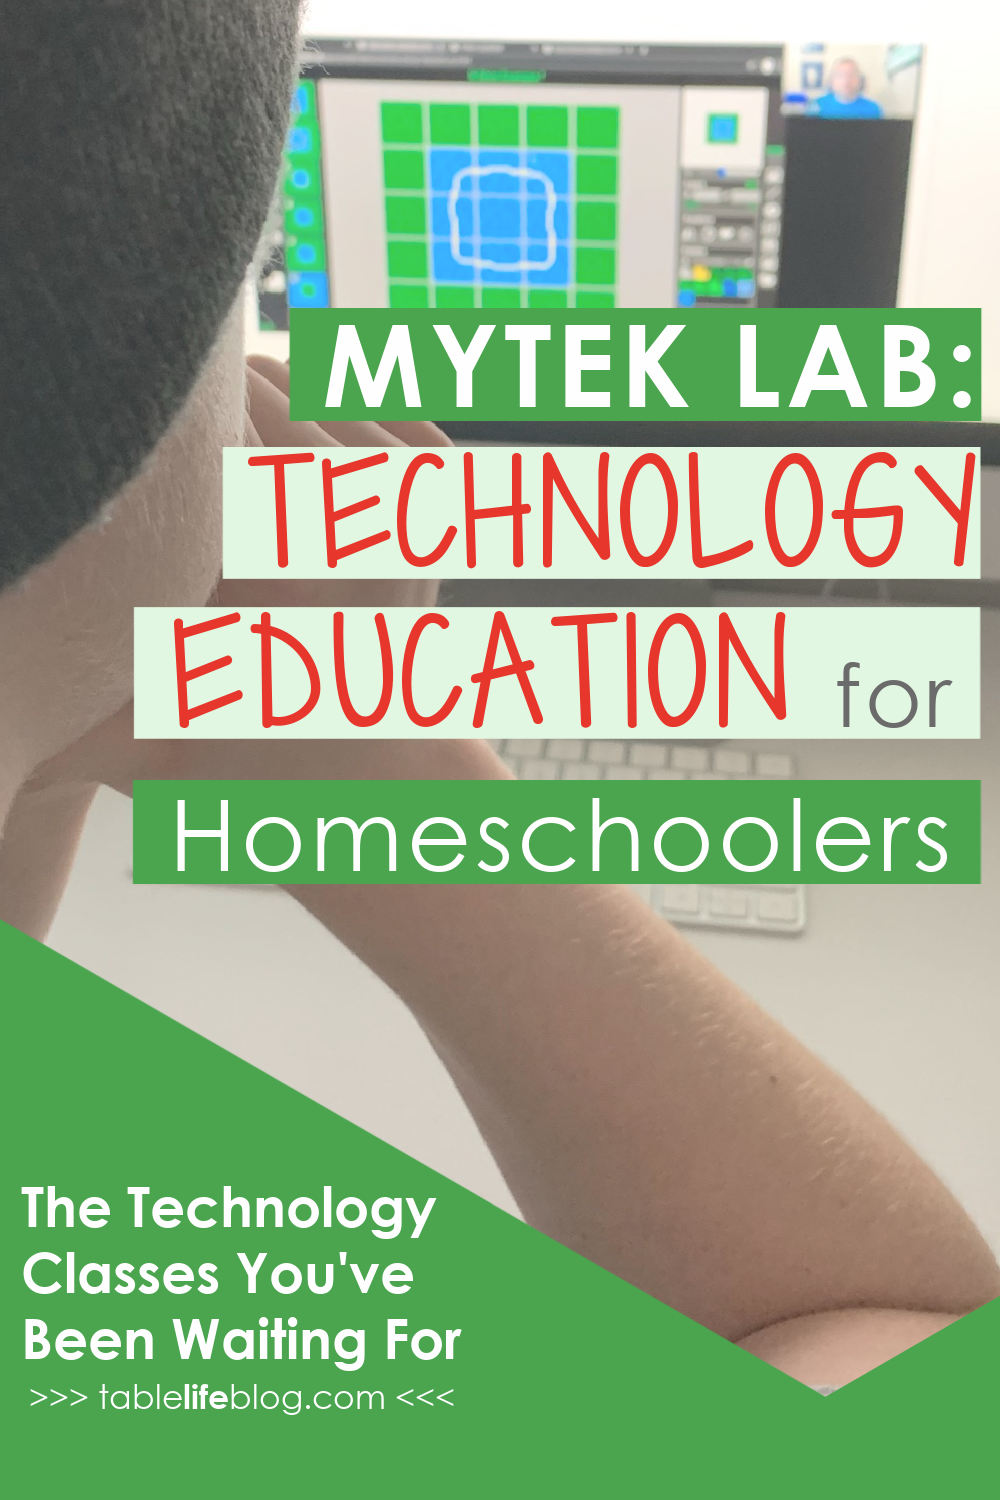 Need to add technology education to your homeschool, but don't know where to start? I have a great solution for you!